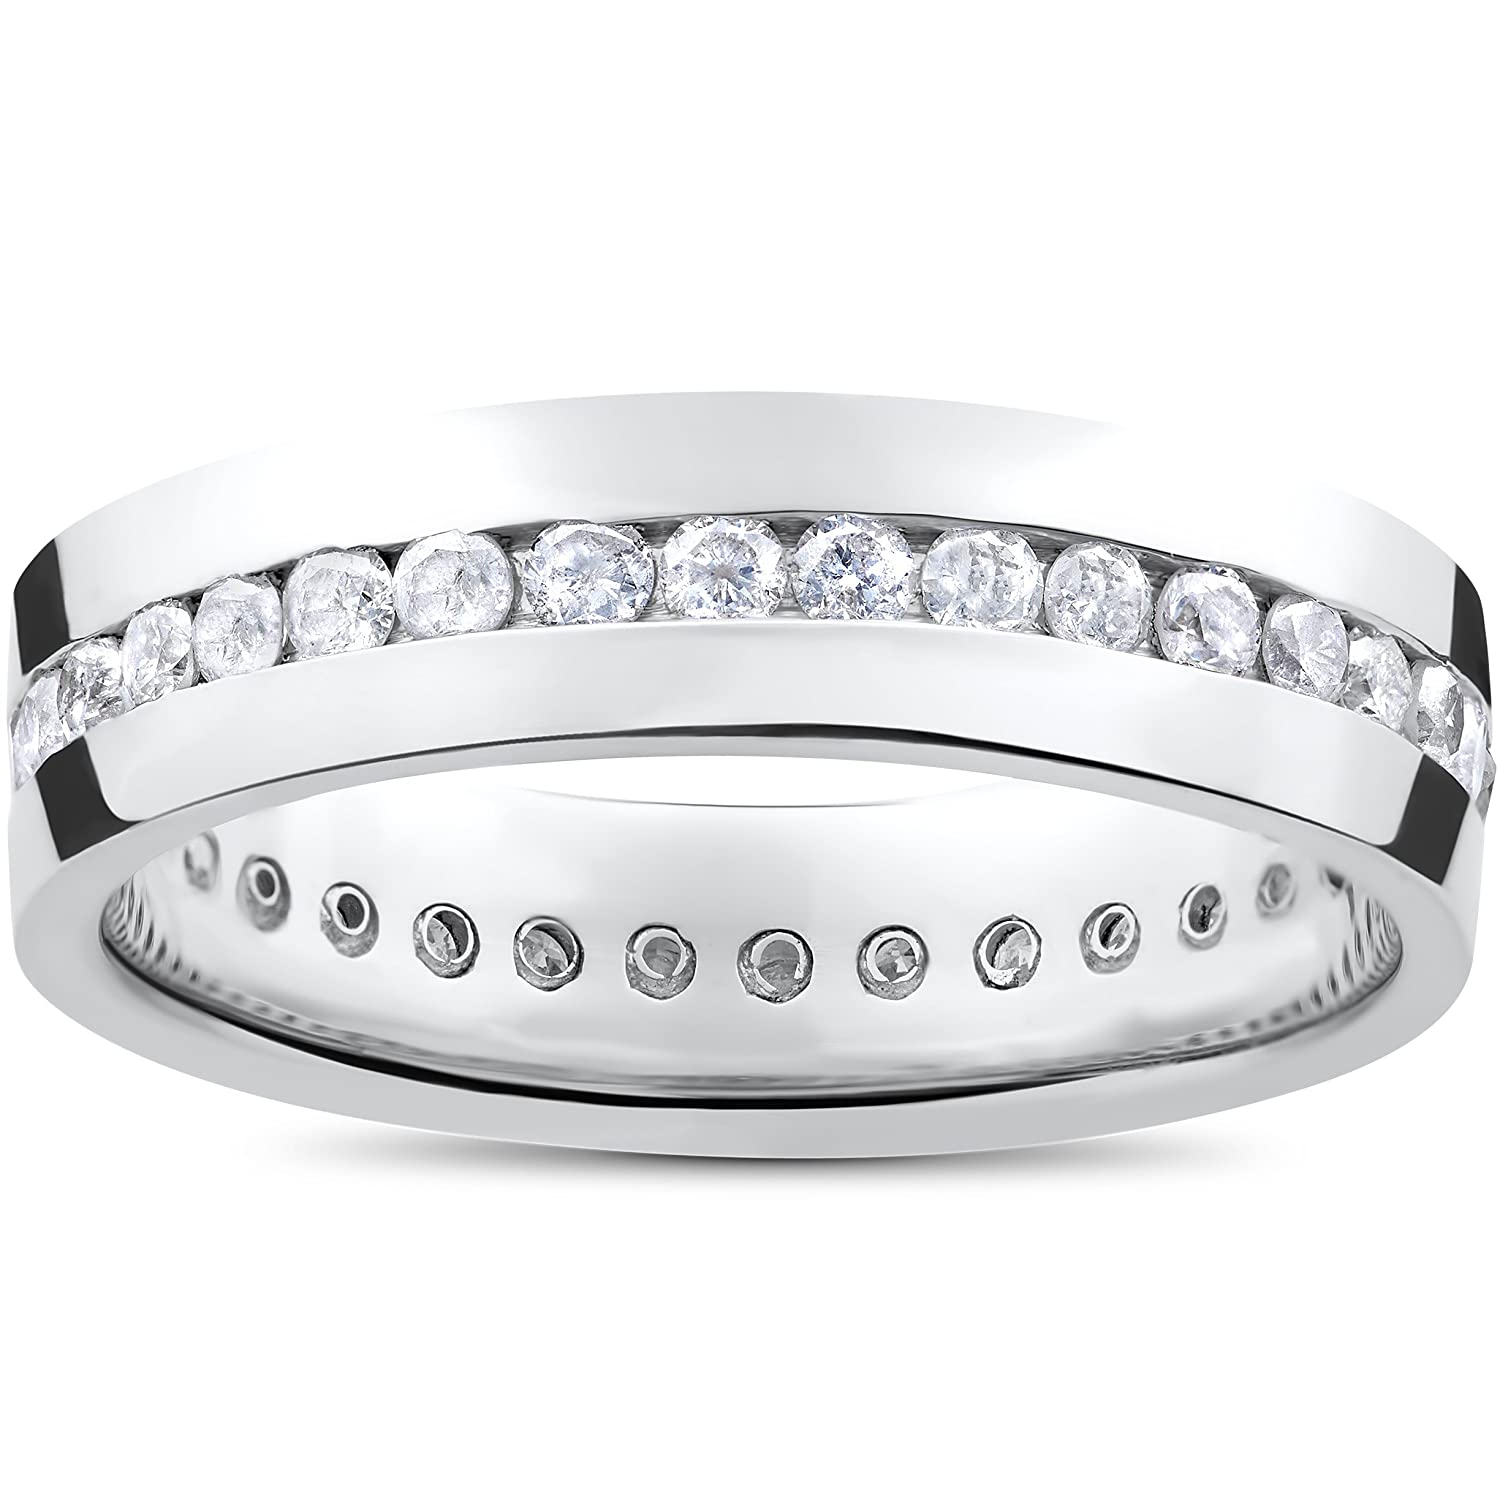 find ct jewelry studio diamonds in carat blog scalloped eternity nile band blue diamond total ring the right prong tw l weight platinum shop for rings bands you